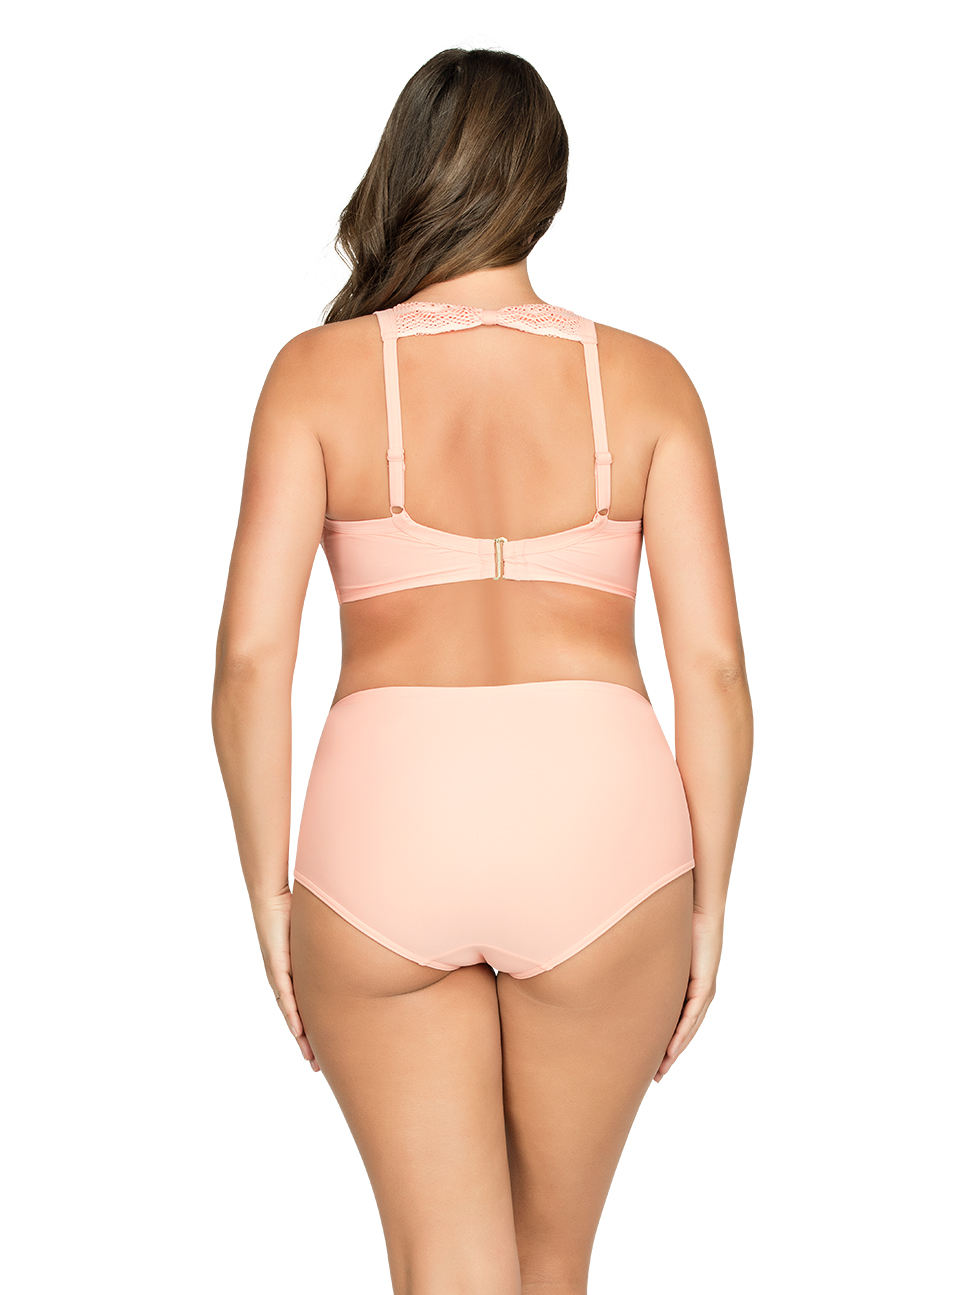 PARFAIT Keira HalterNeckBikiniTopS8071 HighWaistBikiniBottomS8075 Peach Back - Keira Halter-Neck Bikini Top Peach S8071